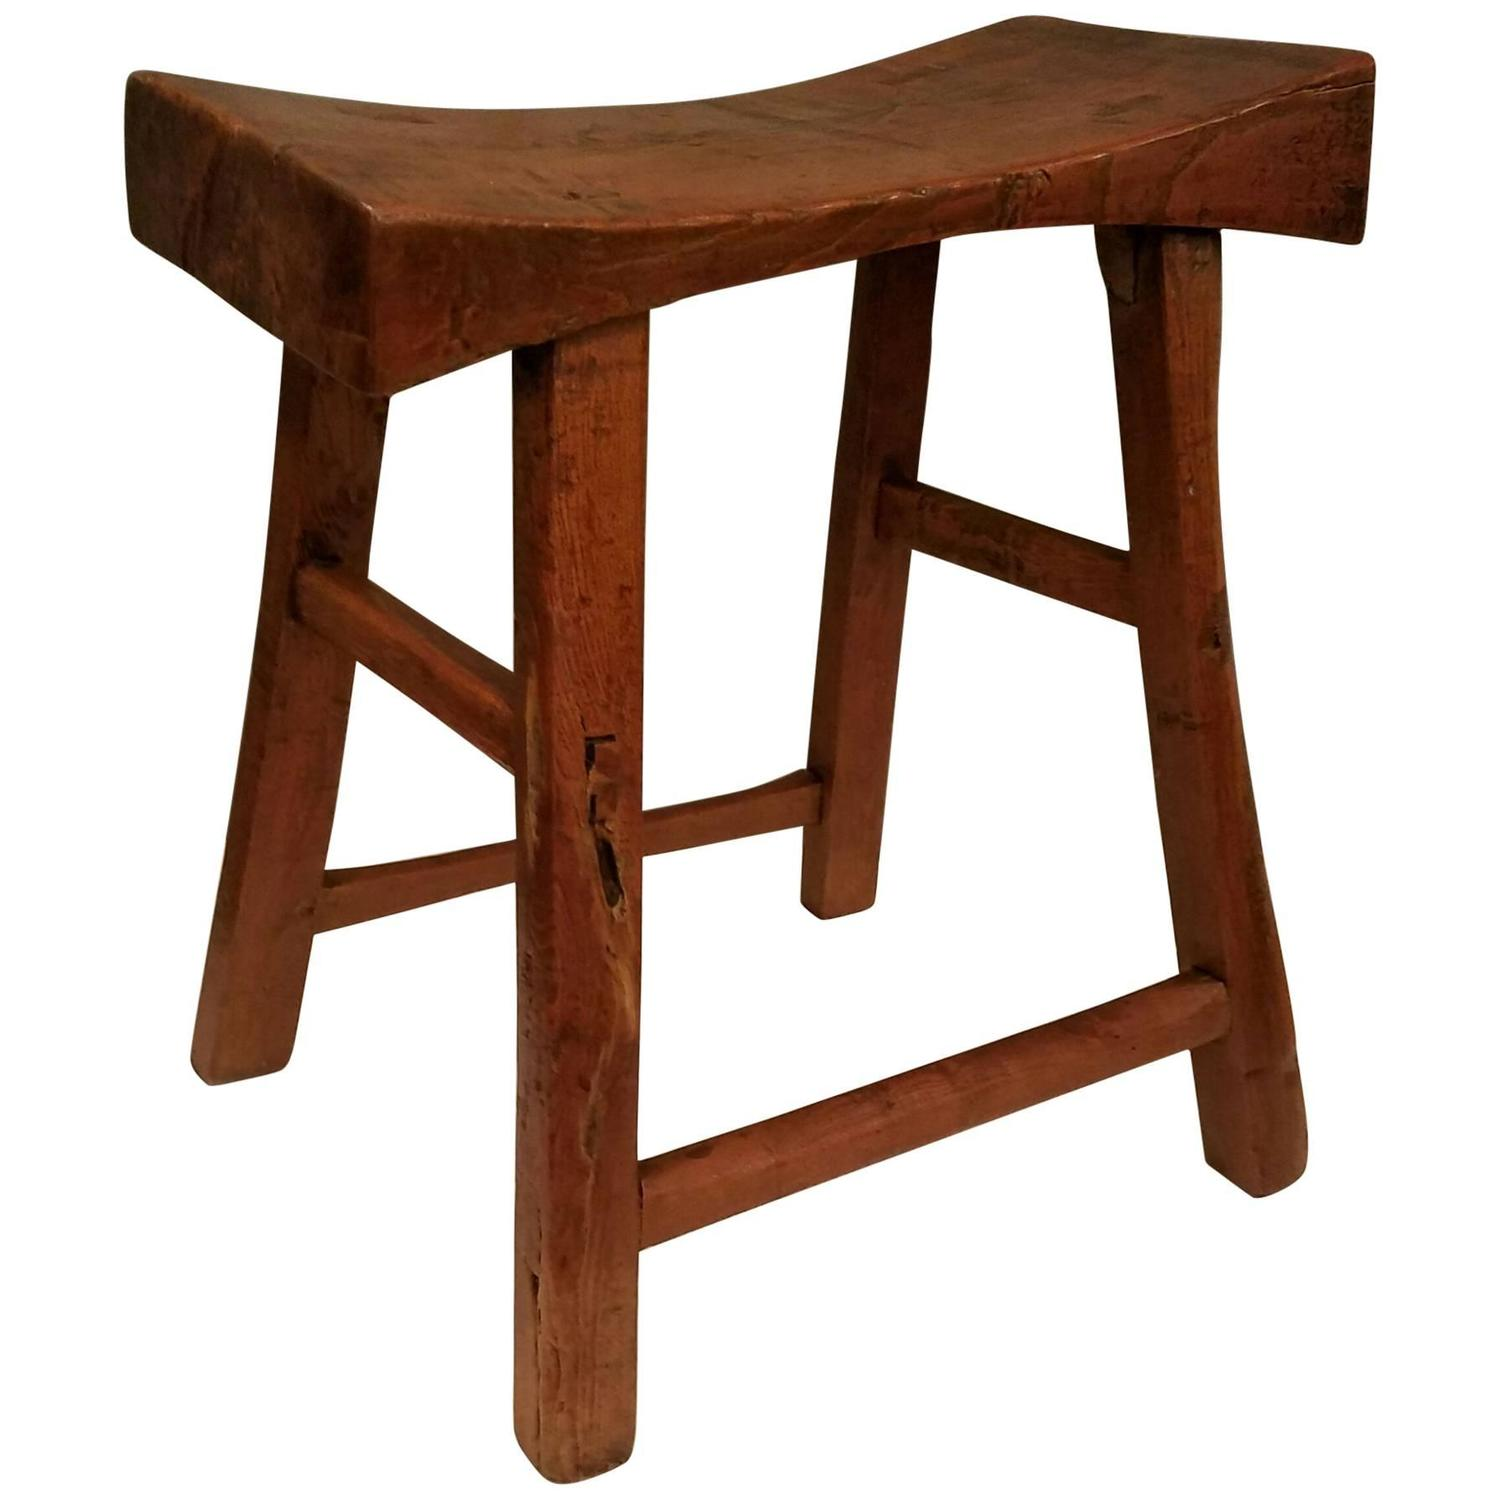 Antique chinese ming style hardwood stool for sale at 1stdibs for Chinese style furniture for sale